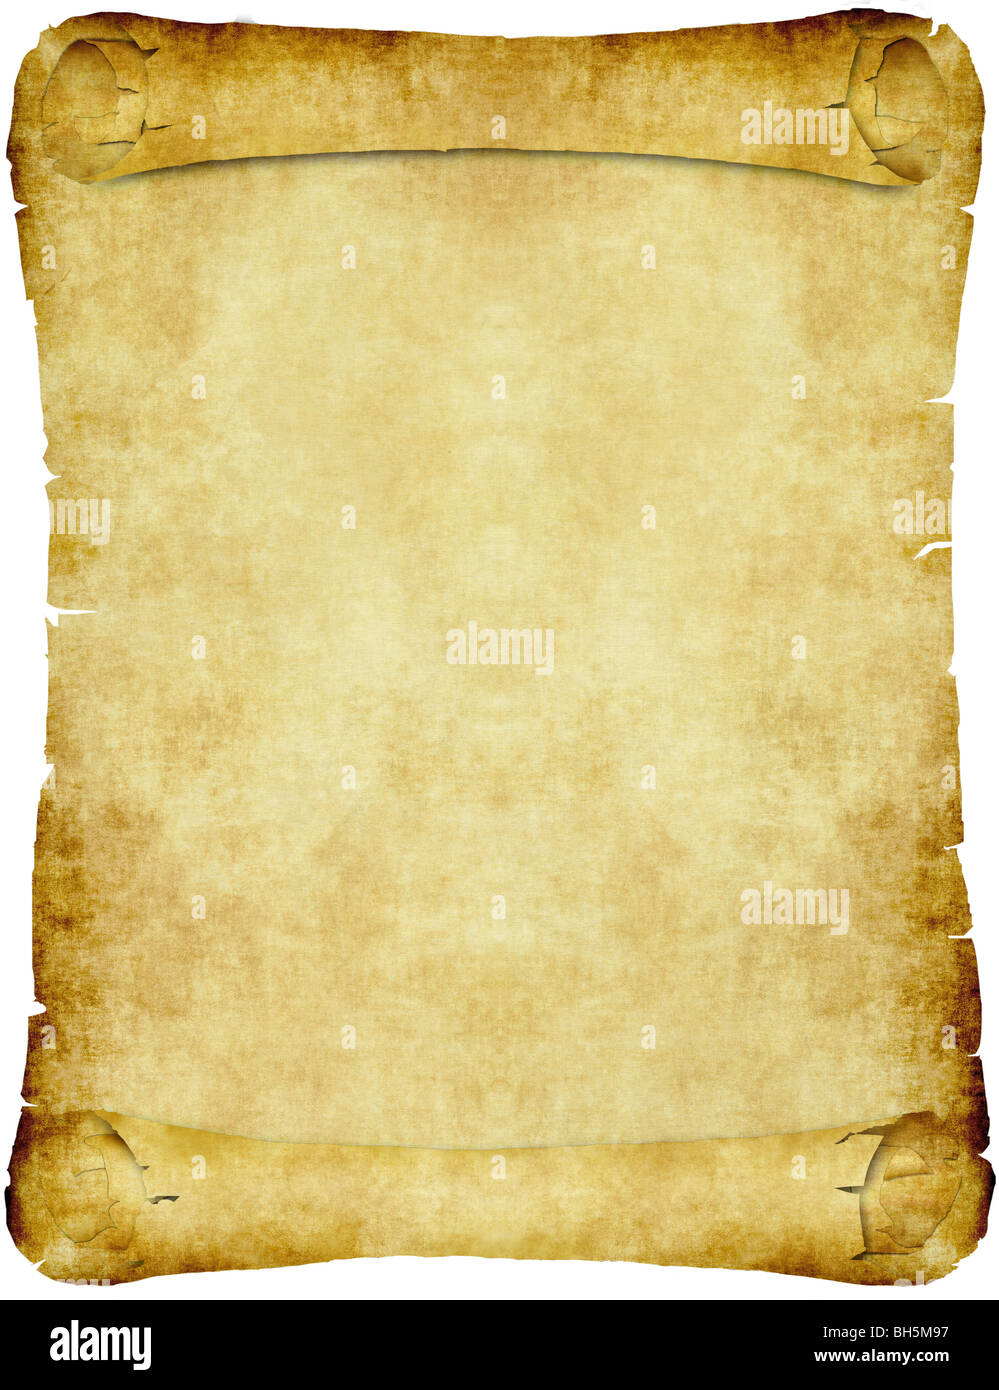 old parchment scroll - Stock Image